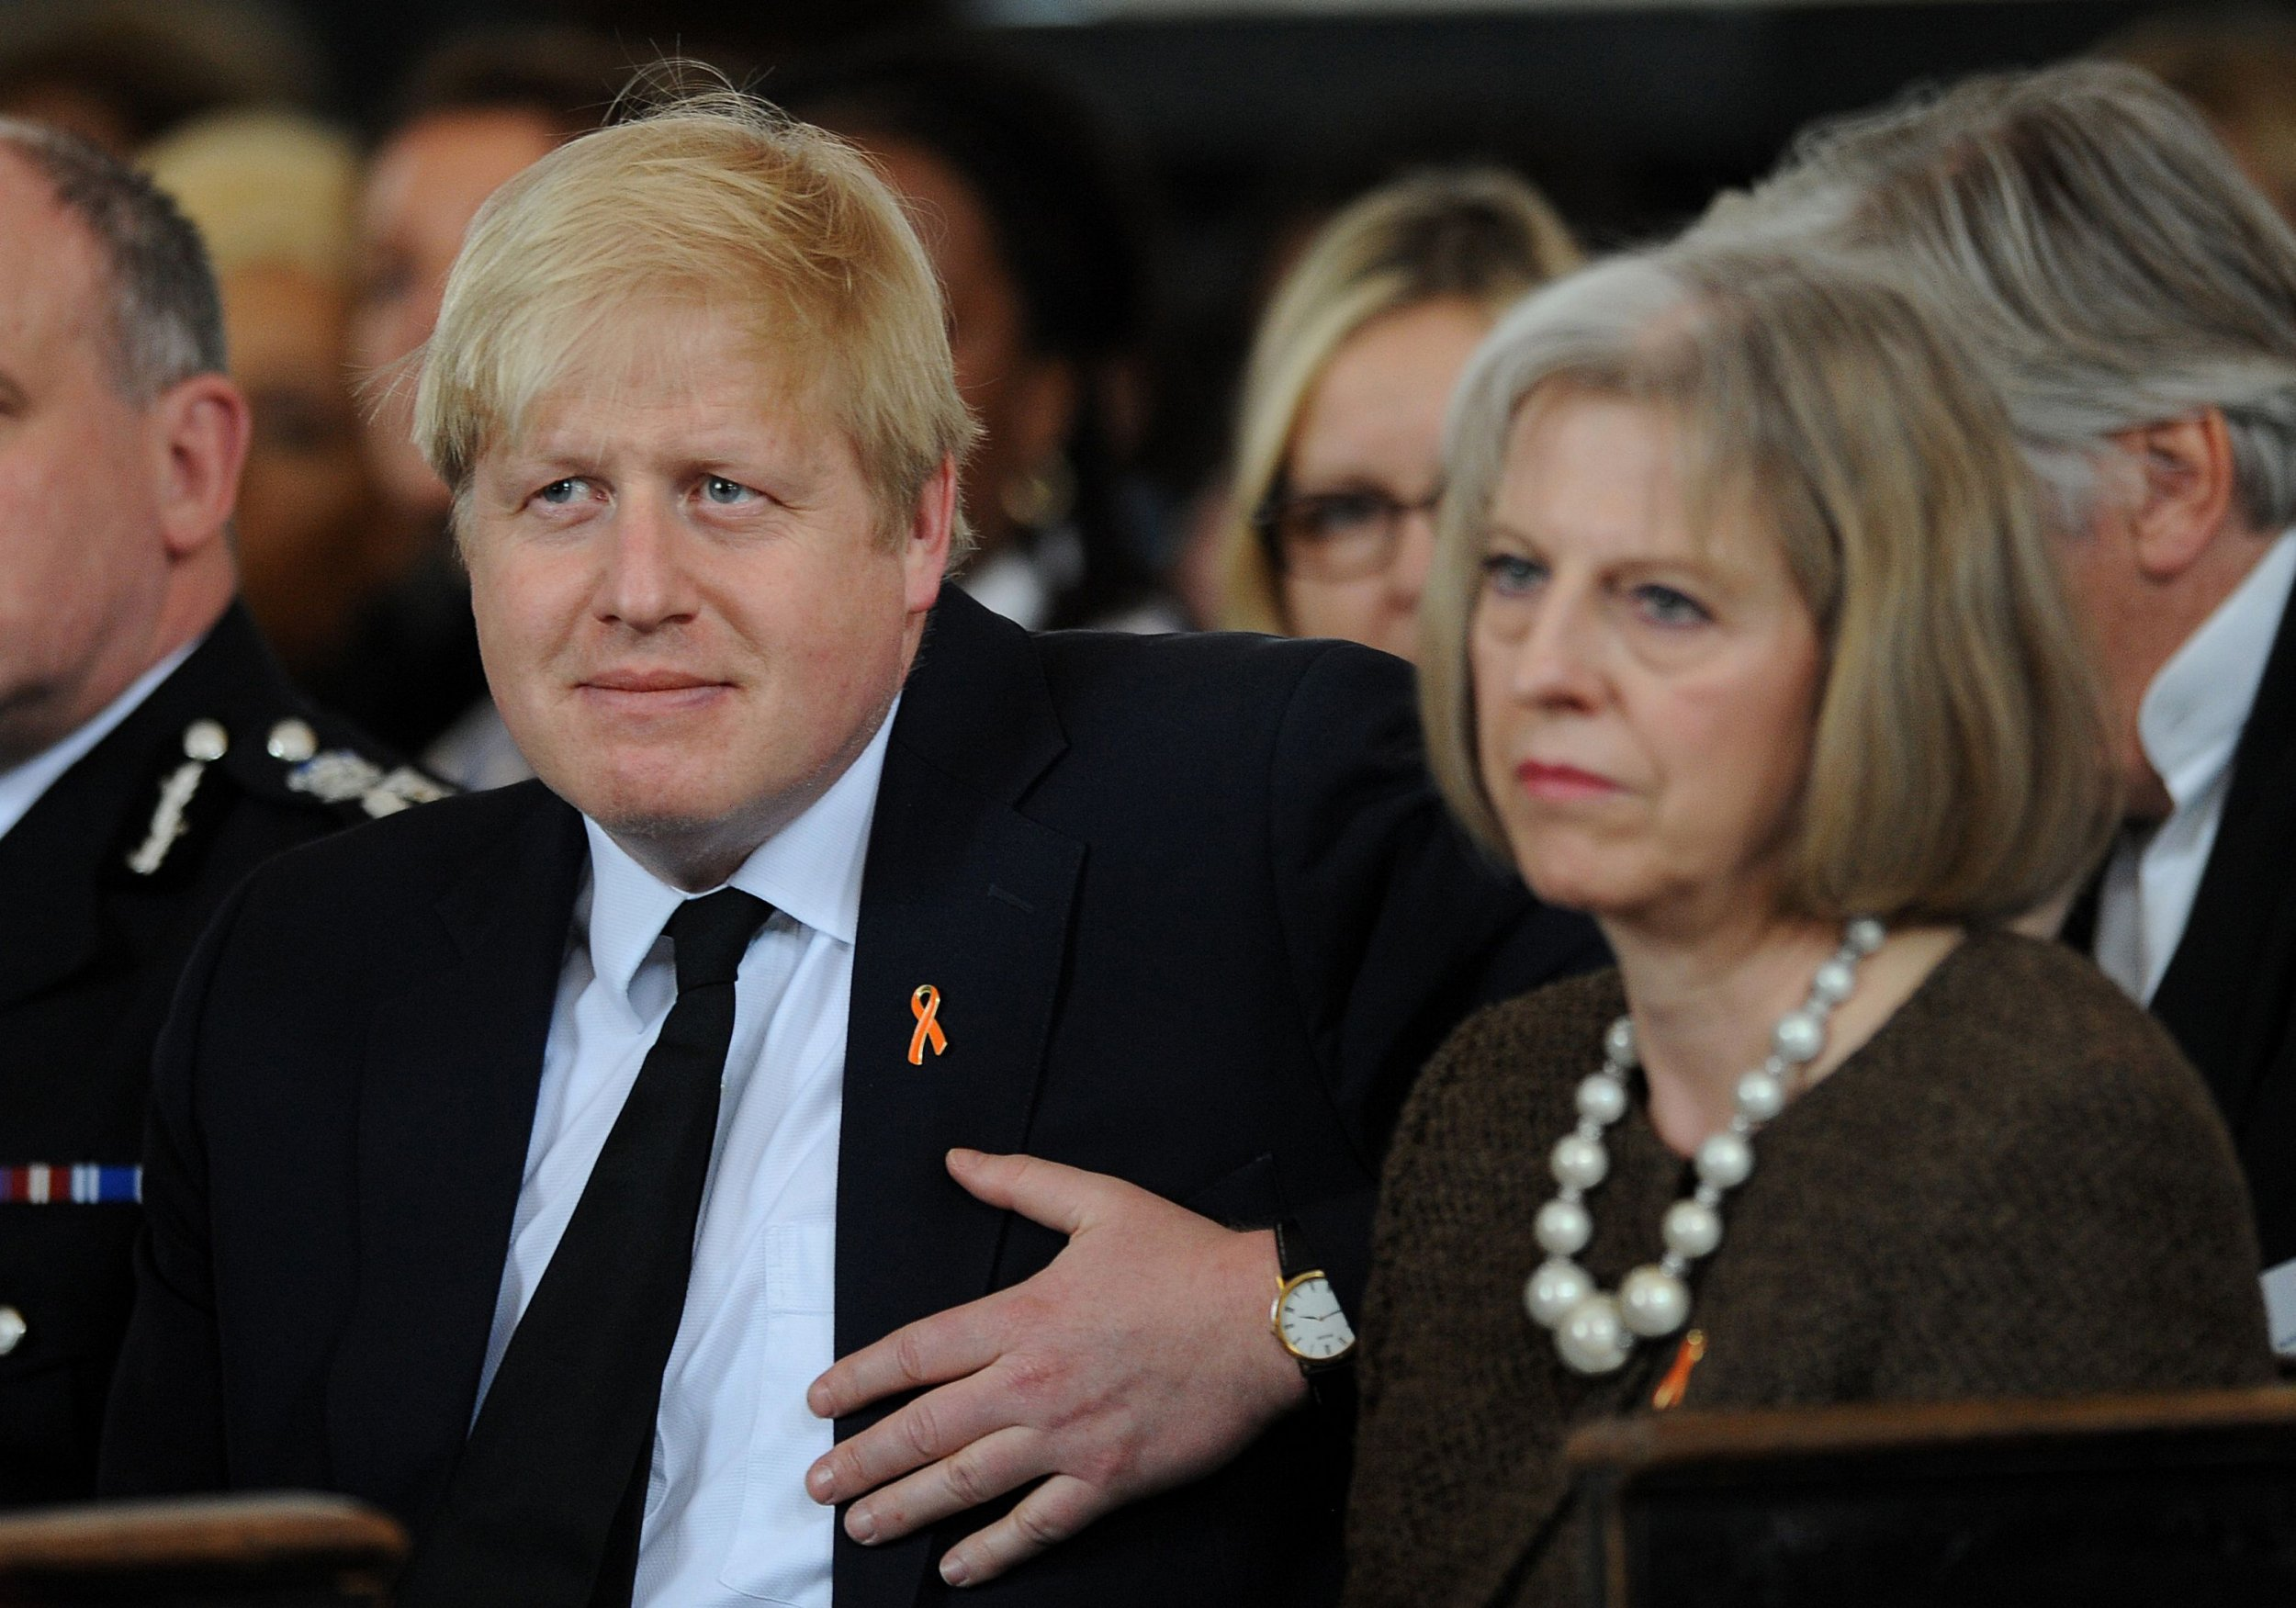 """File photo dated 22/04/13 of Boris Johnson and Theresa May. Cabinet minister Justine Greening has suggested that the pair should strike a deal to form a """"united leadership"""" for the country and the Tory party, as Conservatives jostled to replace the Prime Minister. PRESS ASSOCIATION Photo. Issue date: Sunday June 26, 2016. See PA story POLITICS EU. Photo credit should read: Andrew Matthews/PA Wire"""